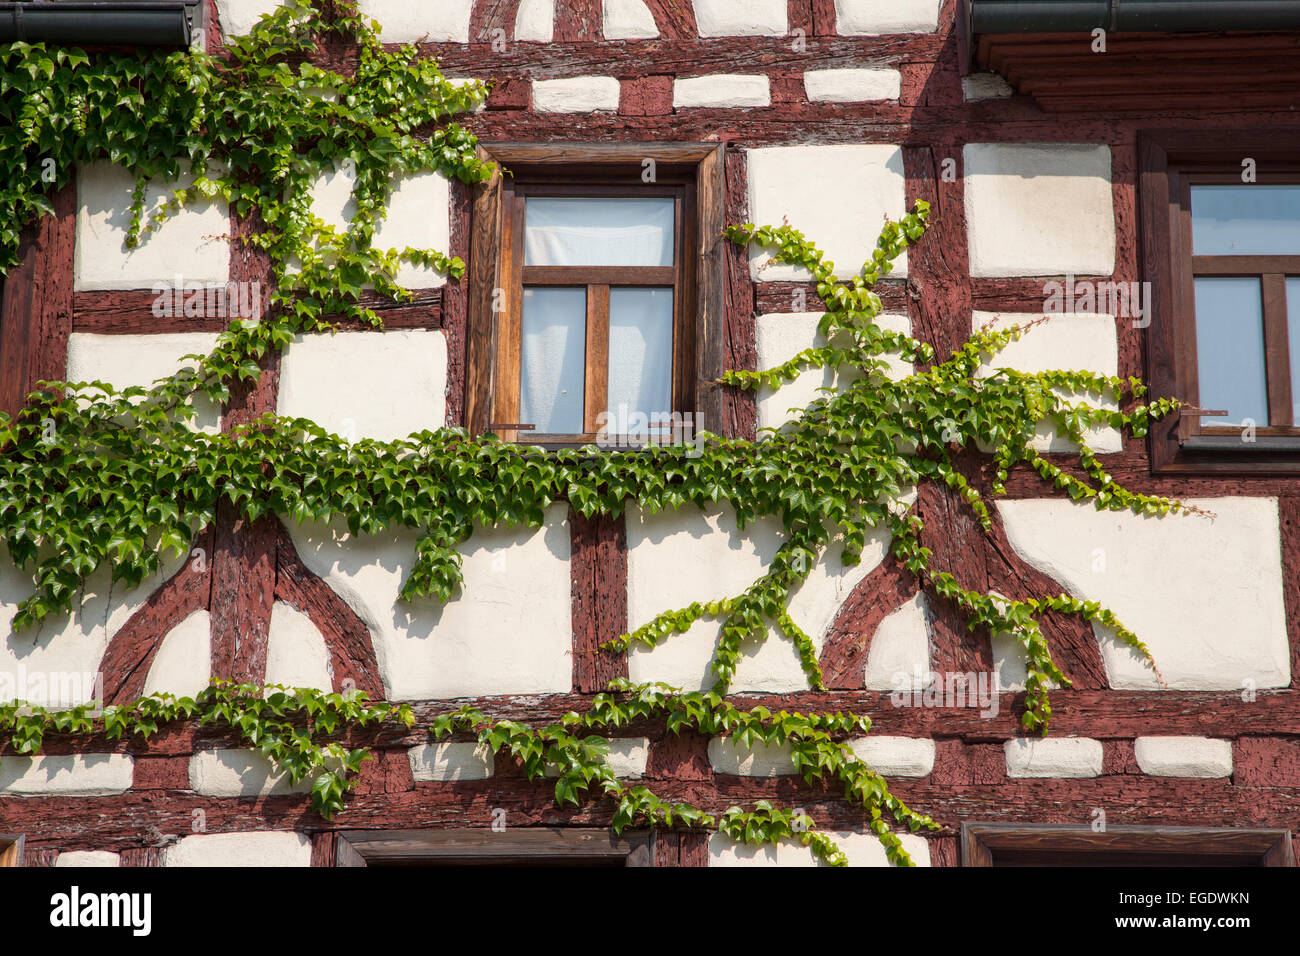 Timber frame house covered with ivy, Fuerth, Franconia, Bavaria, Germany - Stock Image